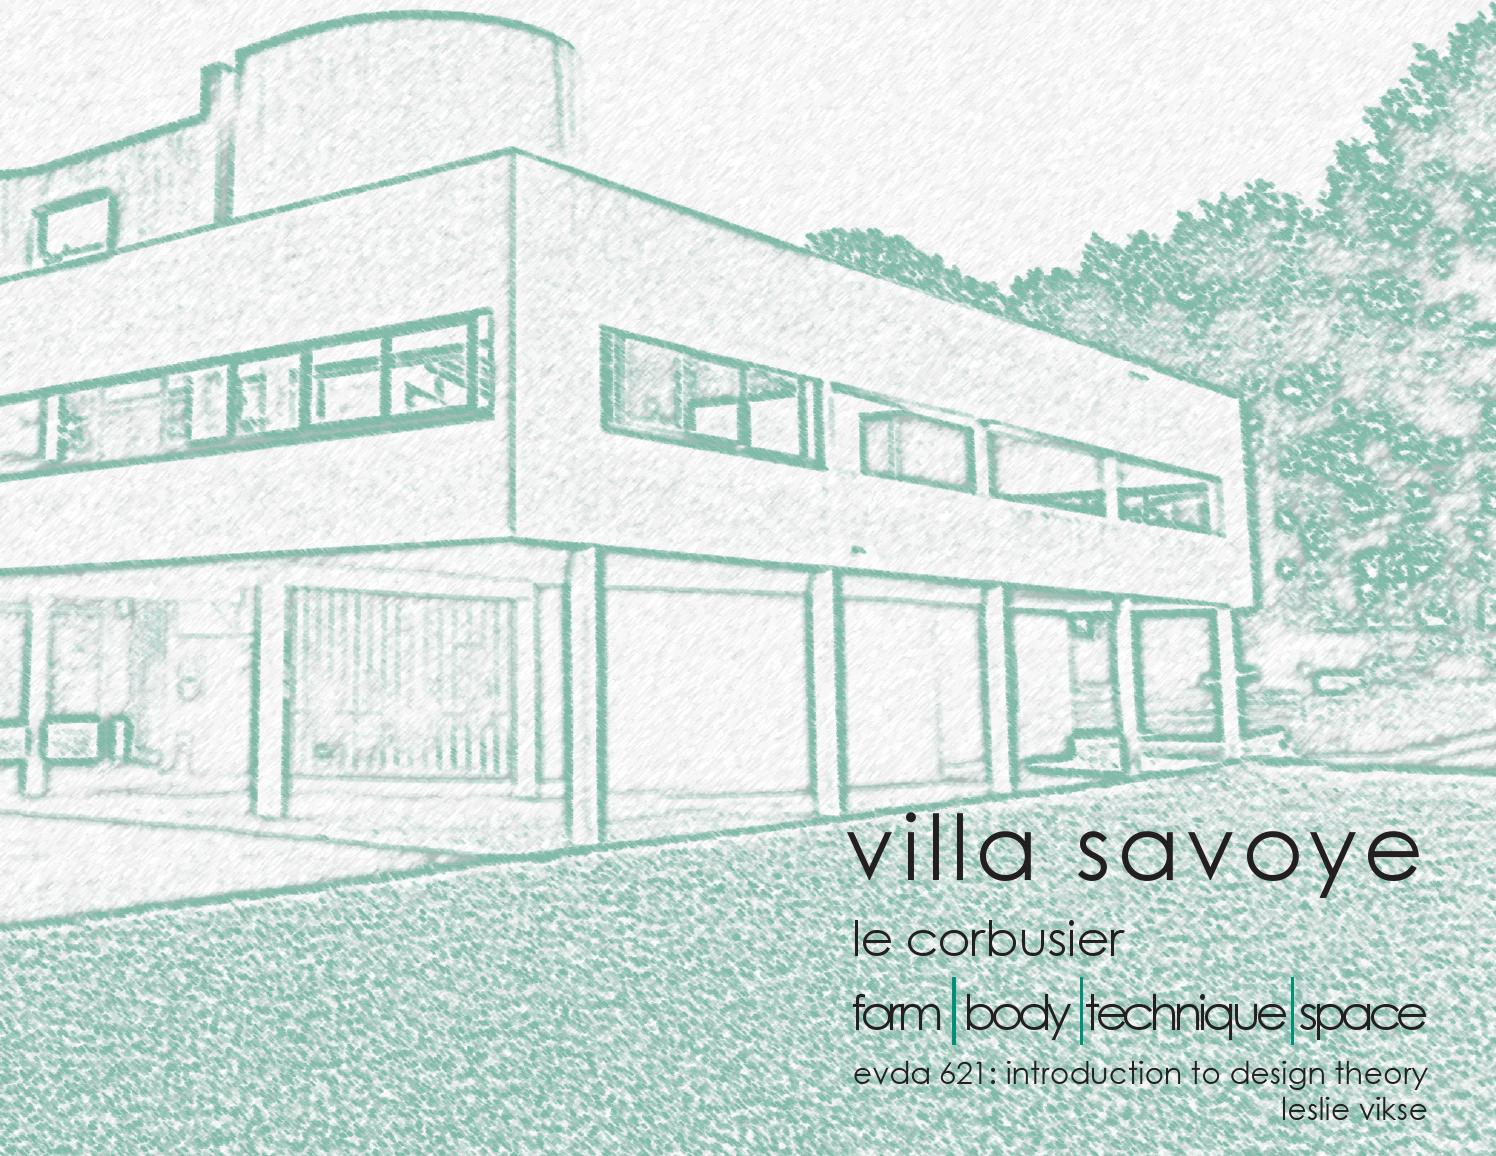 Case study assignment villa savoye by Muhammed Bişken - issuu